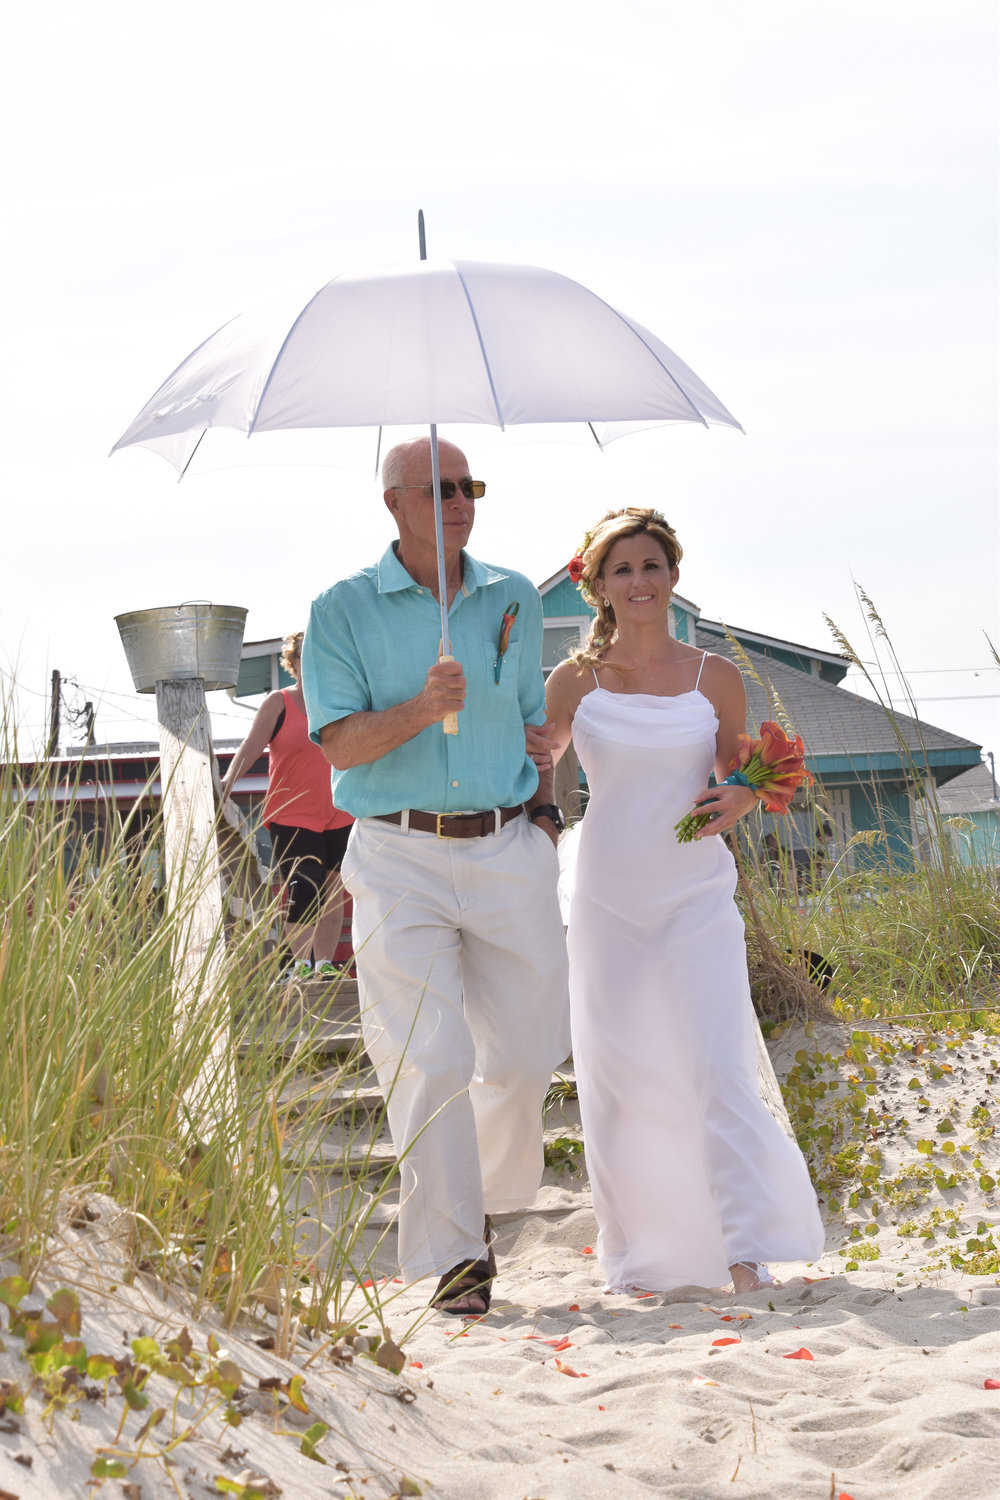 Dad walking his daughter to the alter at beach wedding.